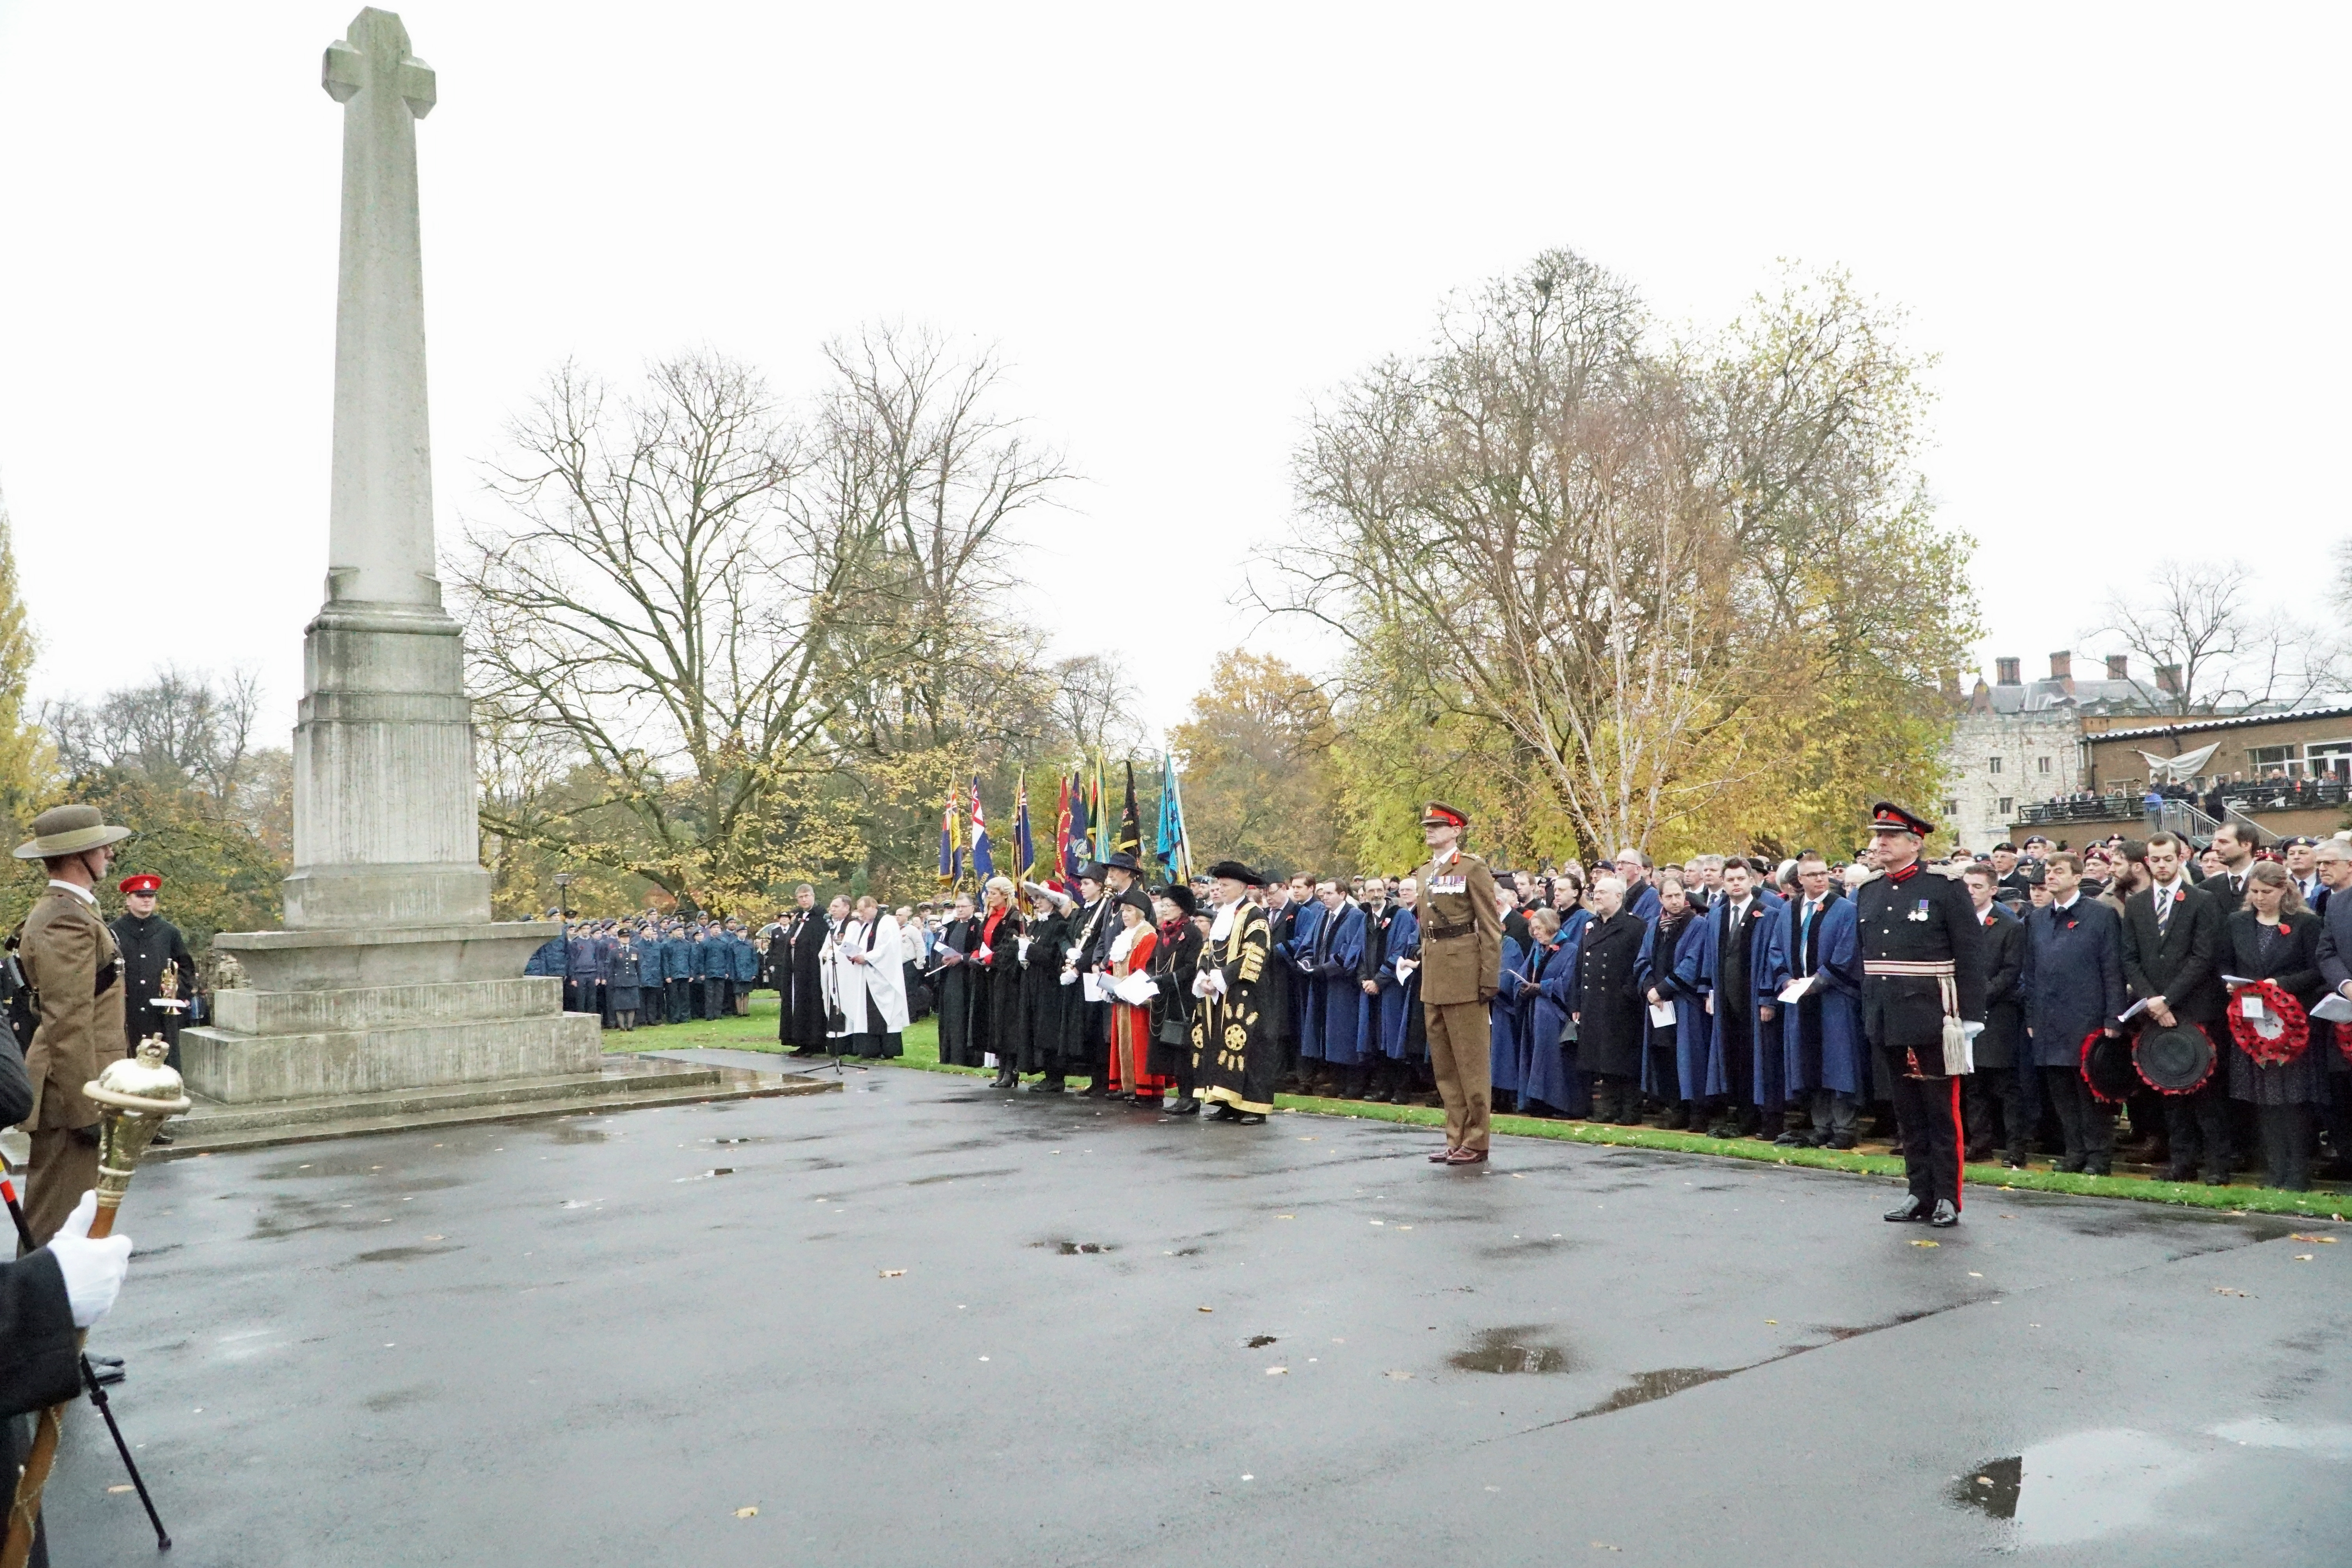 Service of Thanksgiving and Commemoration to mark the Centenary of the Armistice